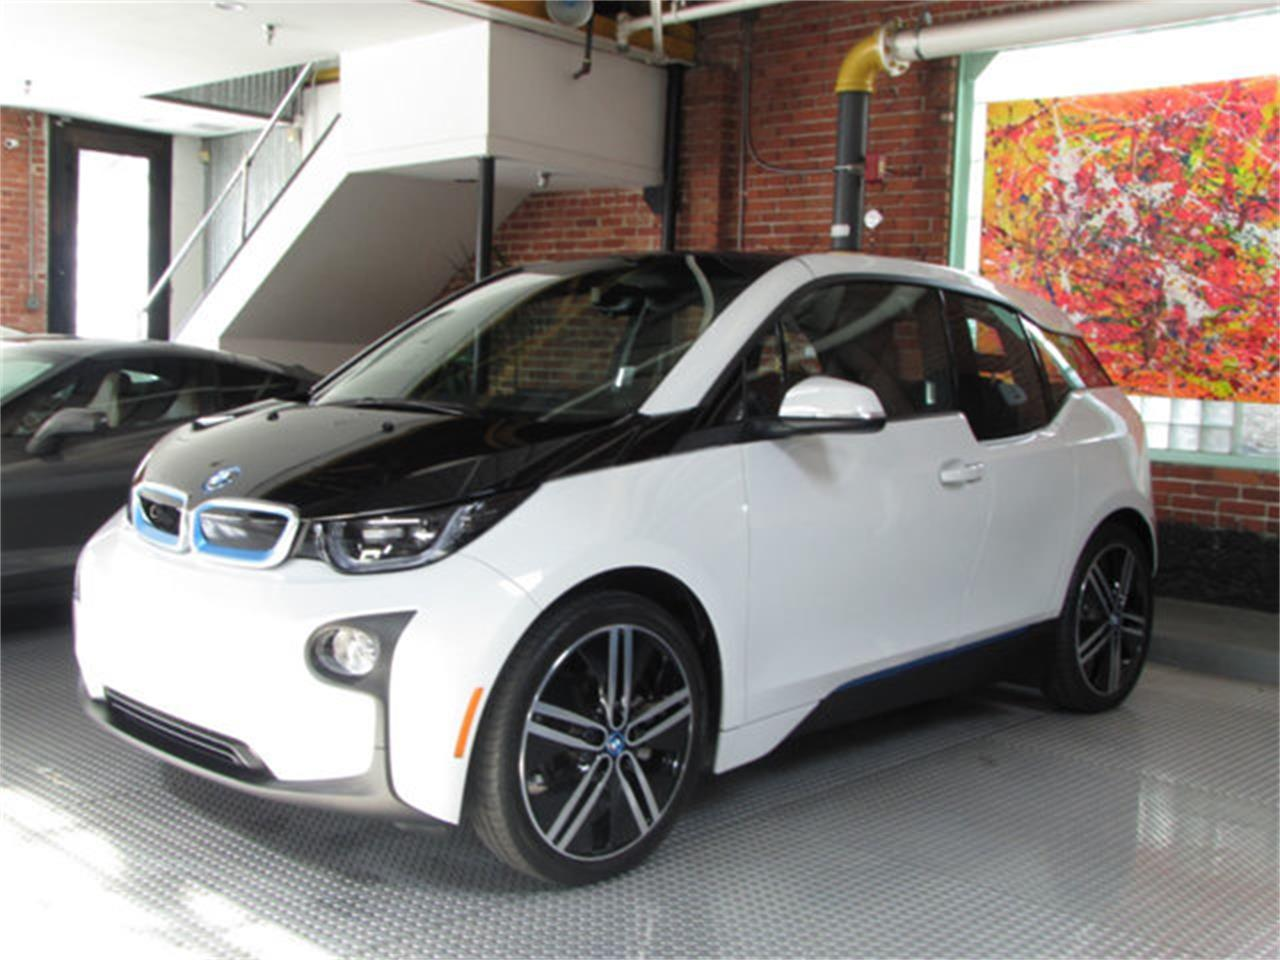 Large Picture of '14 i3 located in California - $17,900.00 Offered by JEM Motor Corp. - LFVL